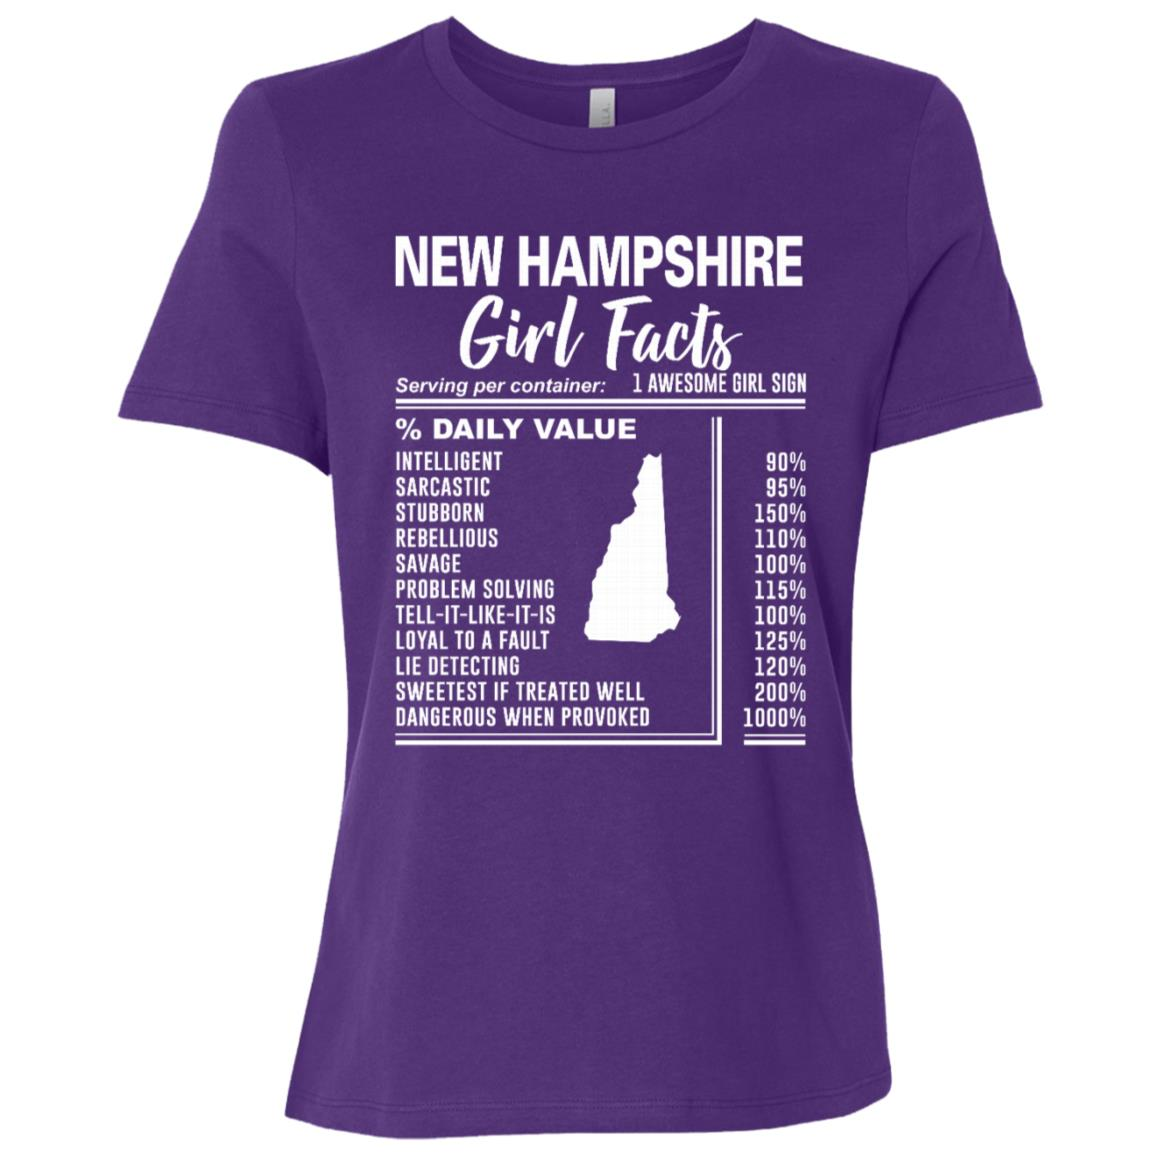 Born in New Hampshire – New Hampshire Girl Facts Women Short Sleeve T-Shirt